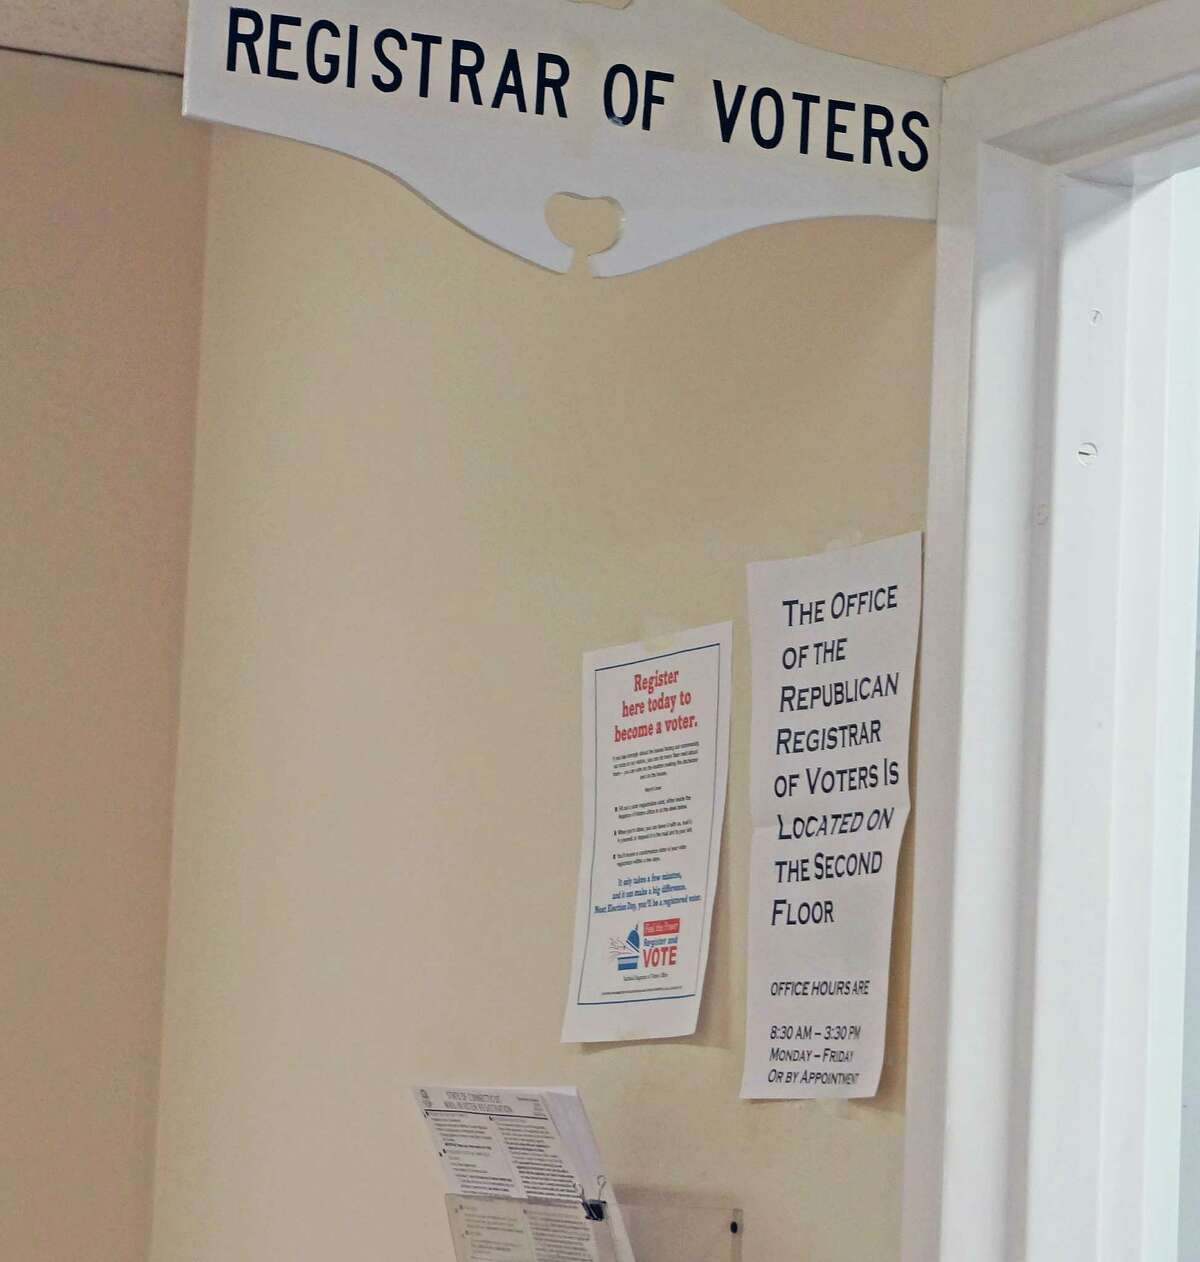 Republican Registrar of Voters Roger Autuori called police Tuesday when this sign indicating his office is located on the second floor of Old Town Hall went missing. It was back up Wednesday.